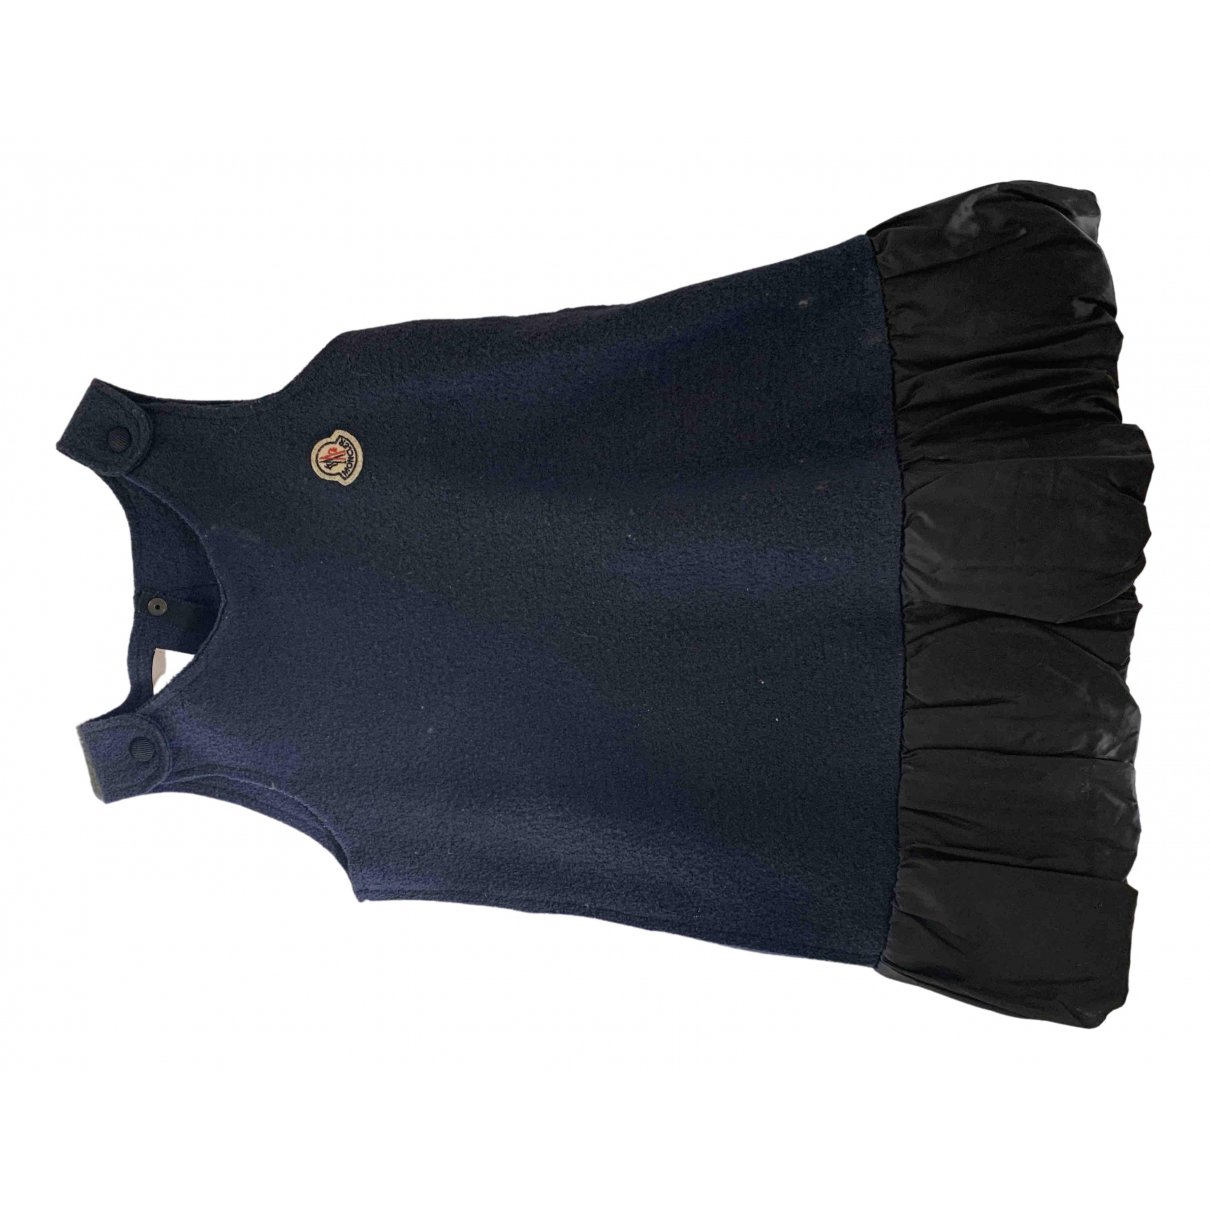 Moncler N Blue Wool dress for Kids 4 years - up to 102cm FR